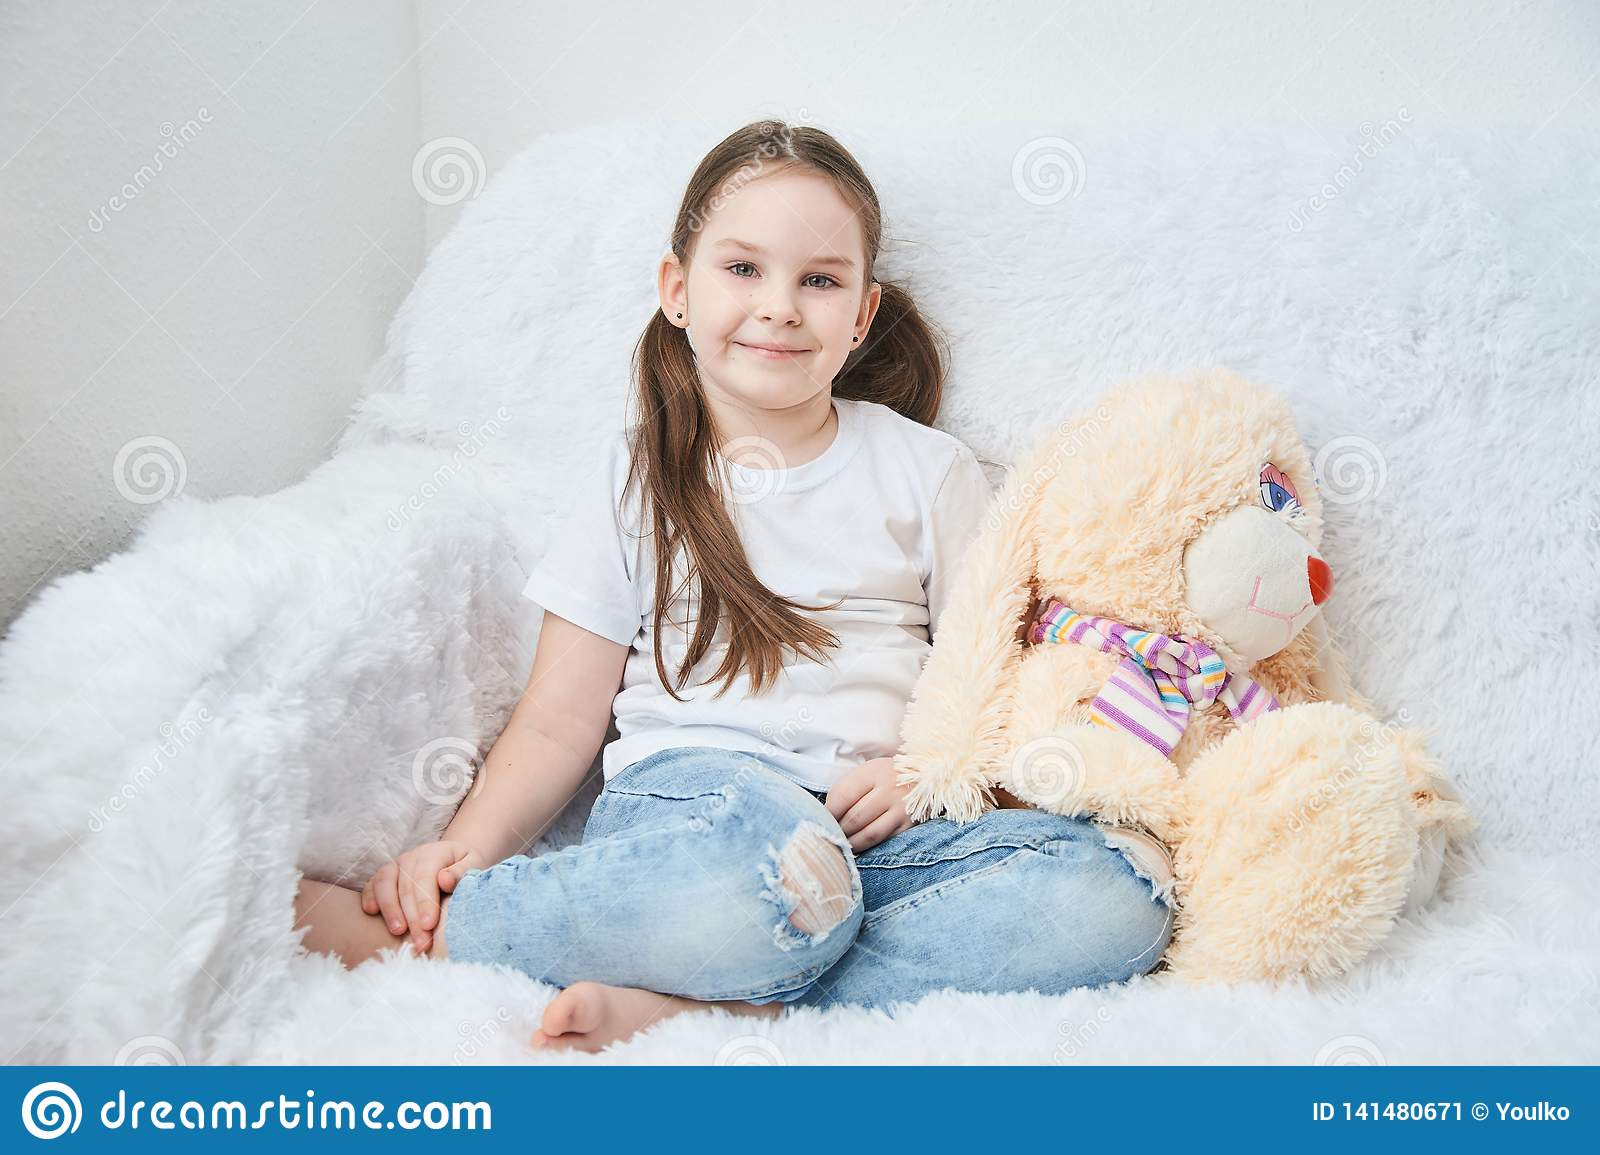 Baby girl sitting on white sofa in white t-shirts and blue jeans. Soft plush banny